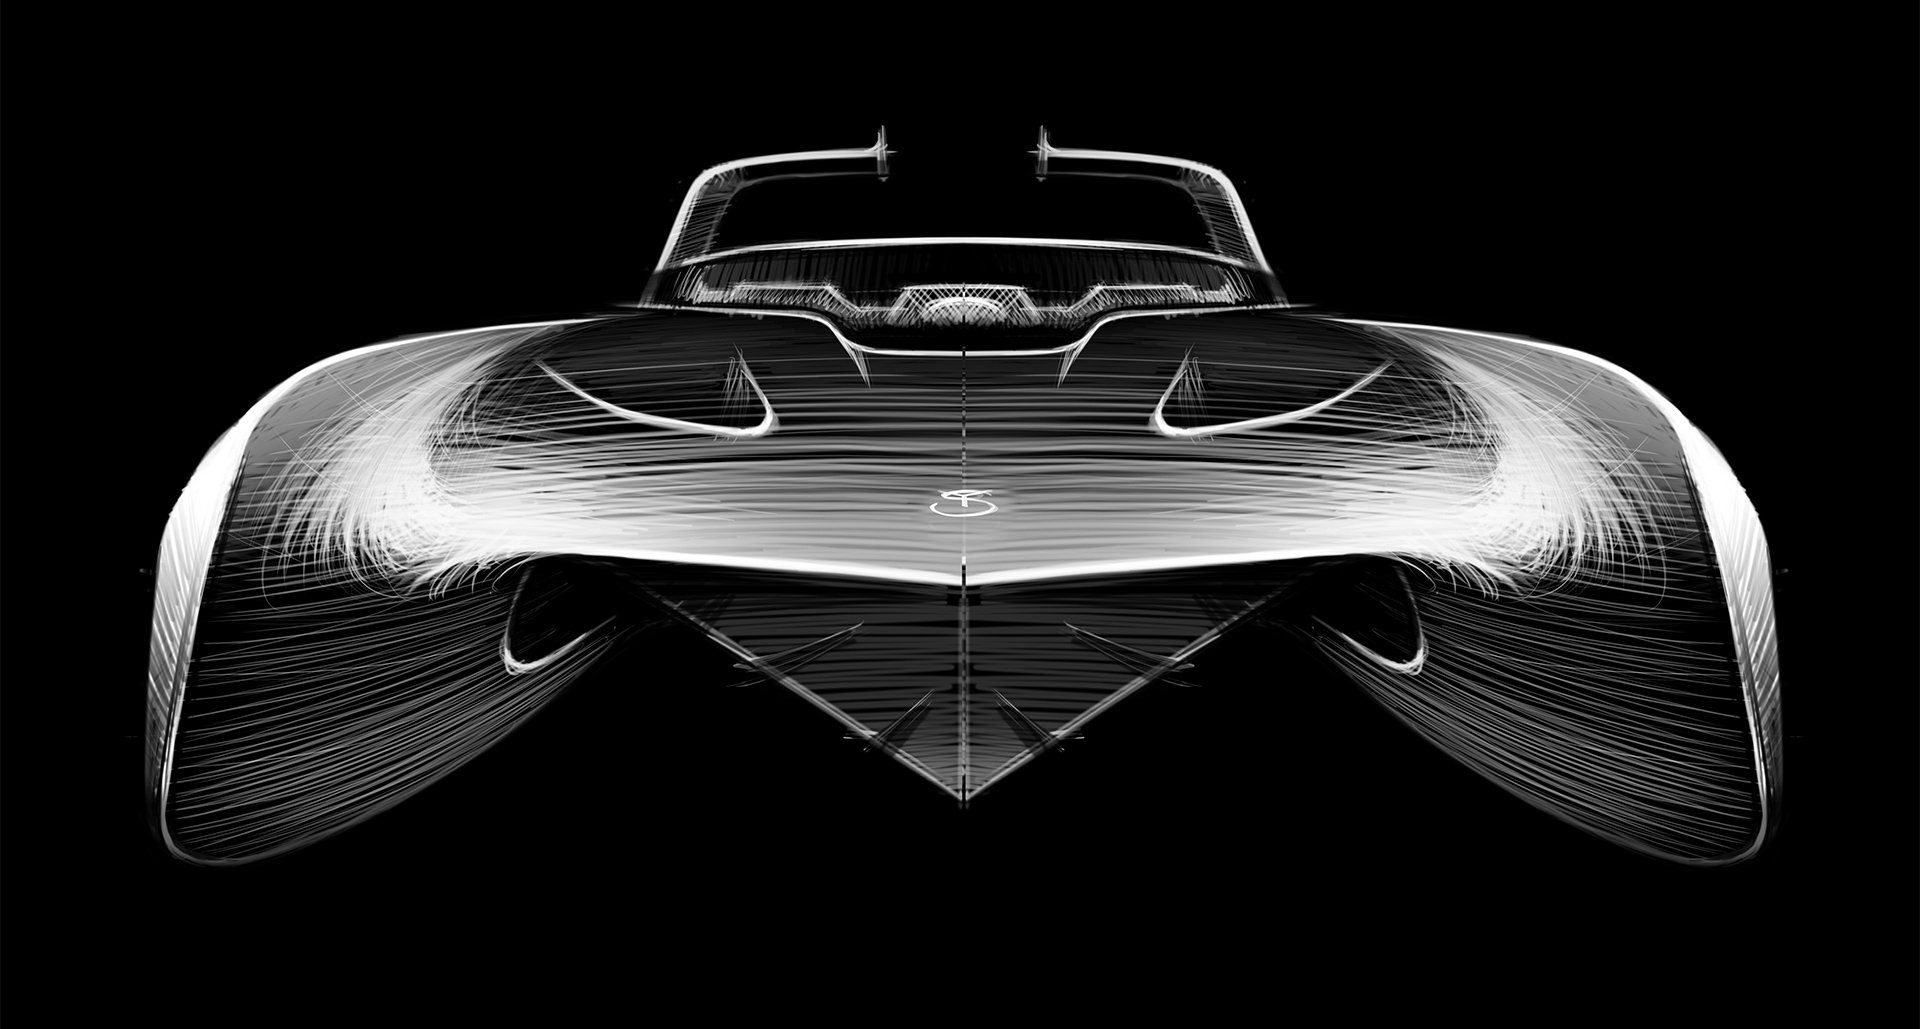 2019 Bugatti La Voiture Noire Sketches By Etienne Gallery: This Yacht Was Inspired By The Bugatti Atlantic And